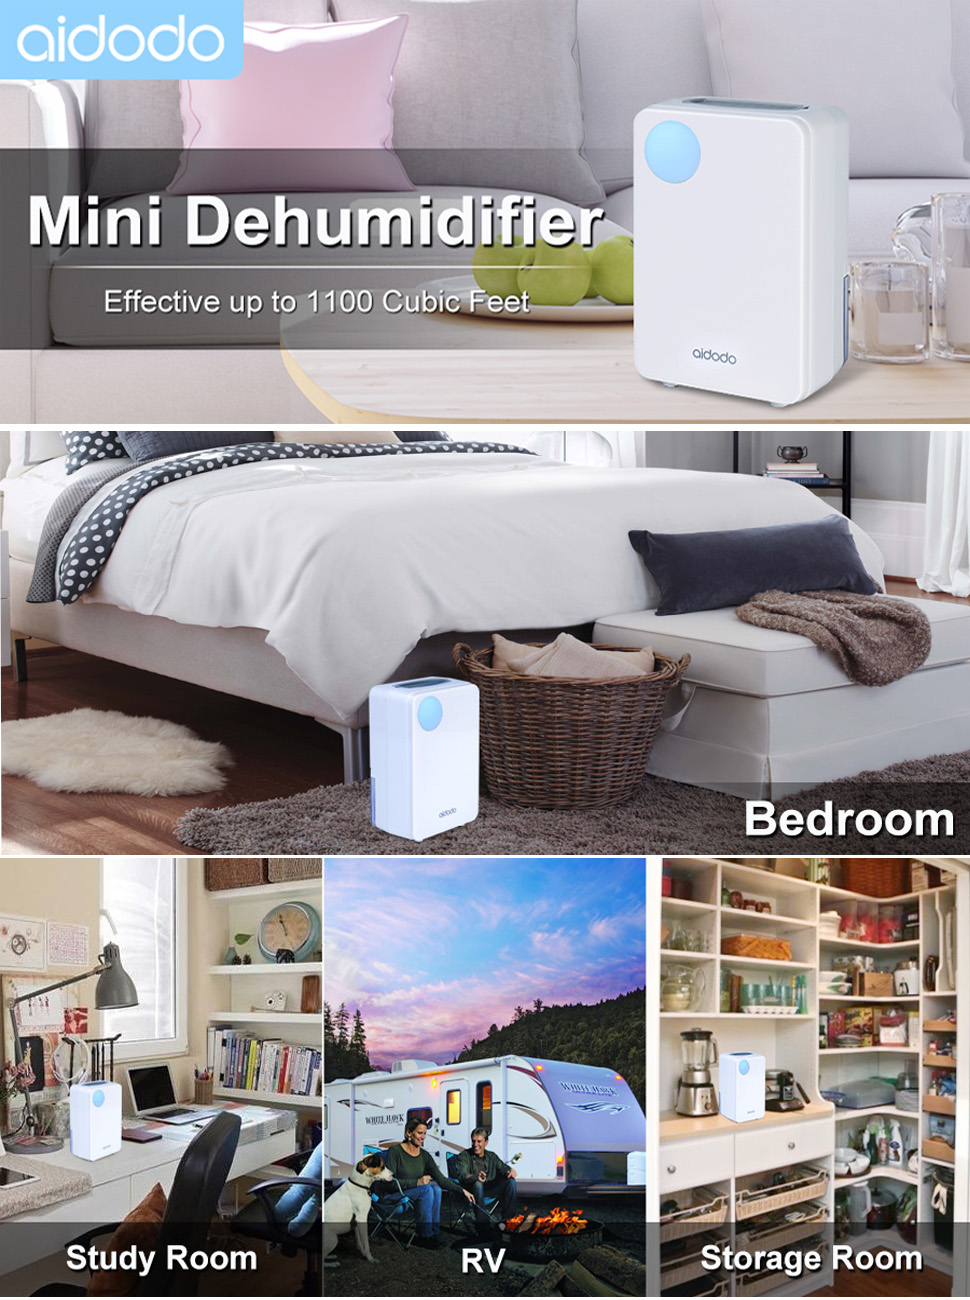 Nice Aidodo 1100 Cubic Feet Mini Dehumidifier    Quickly And Efficiently Removes  Damp, Mould And Moisture From The Air. It Is Perfect For Use In Small Areas  Such ...